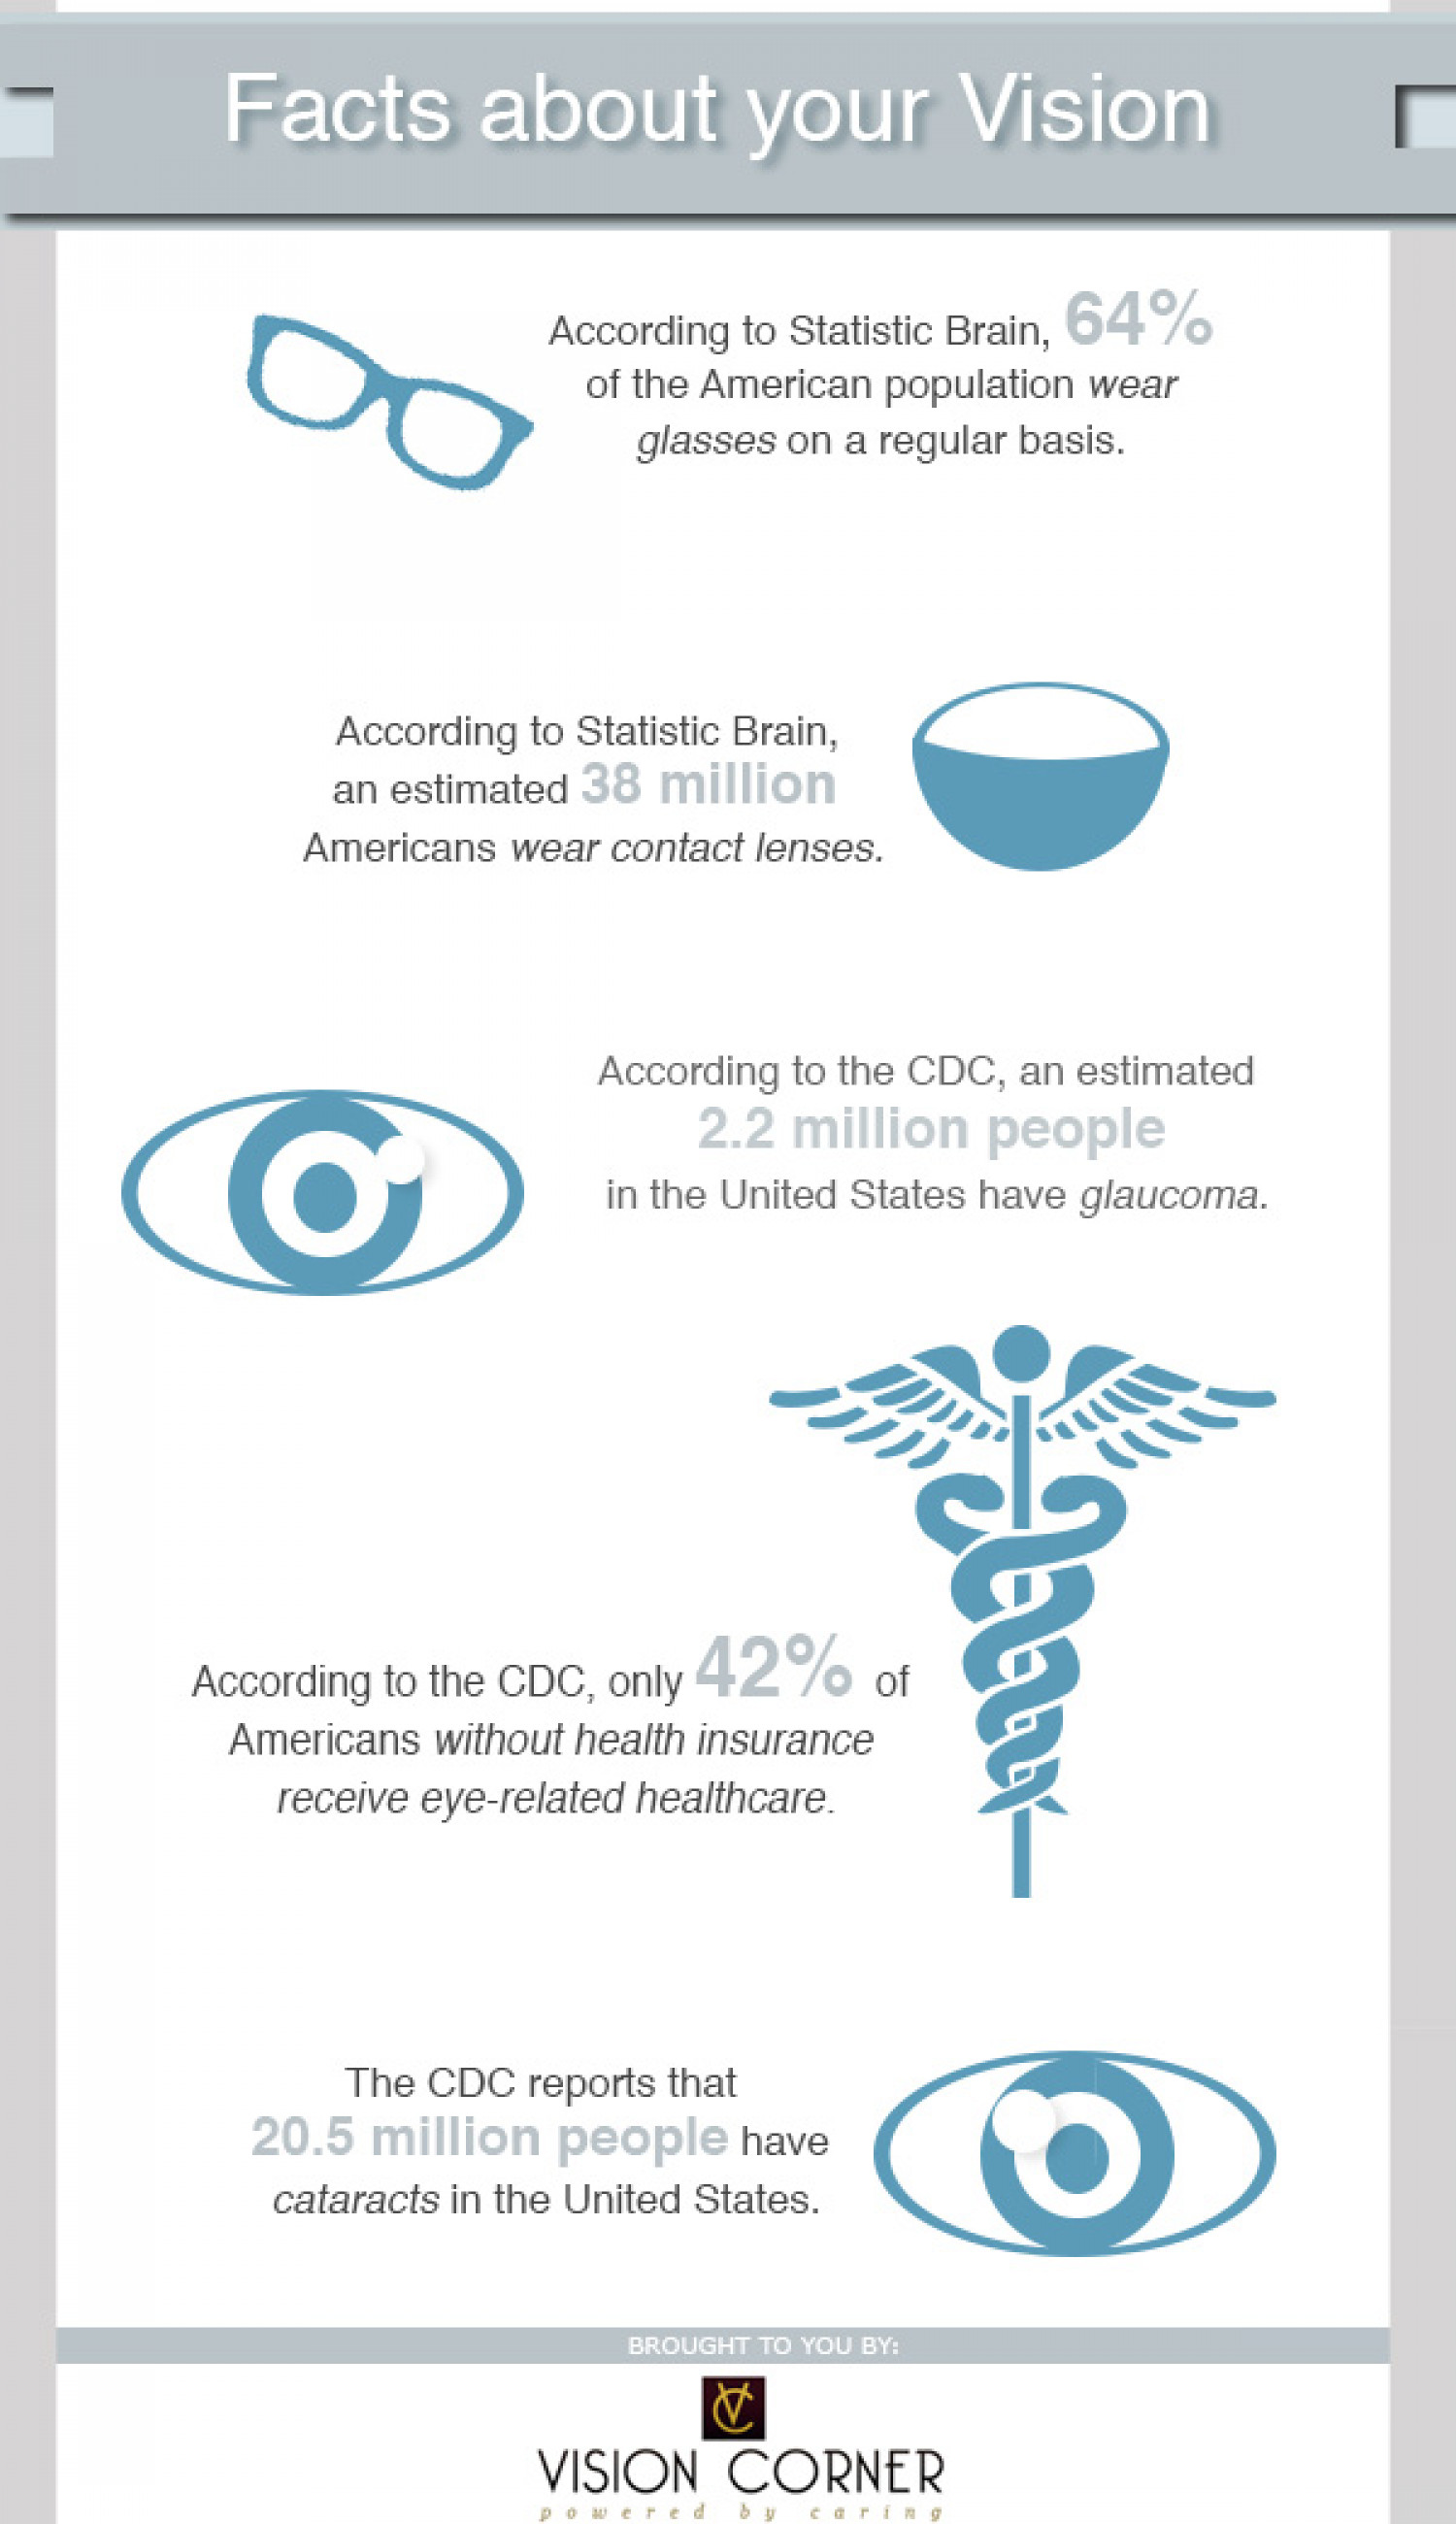 Facts About Your Vision Infographic